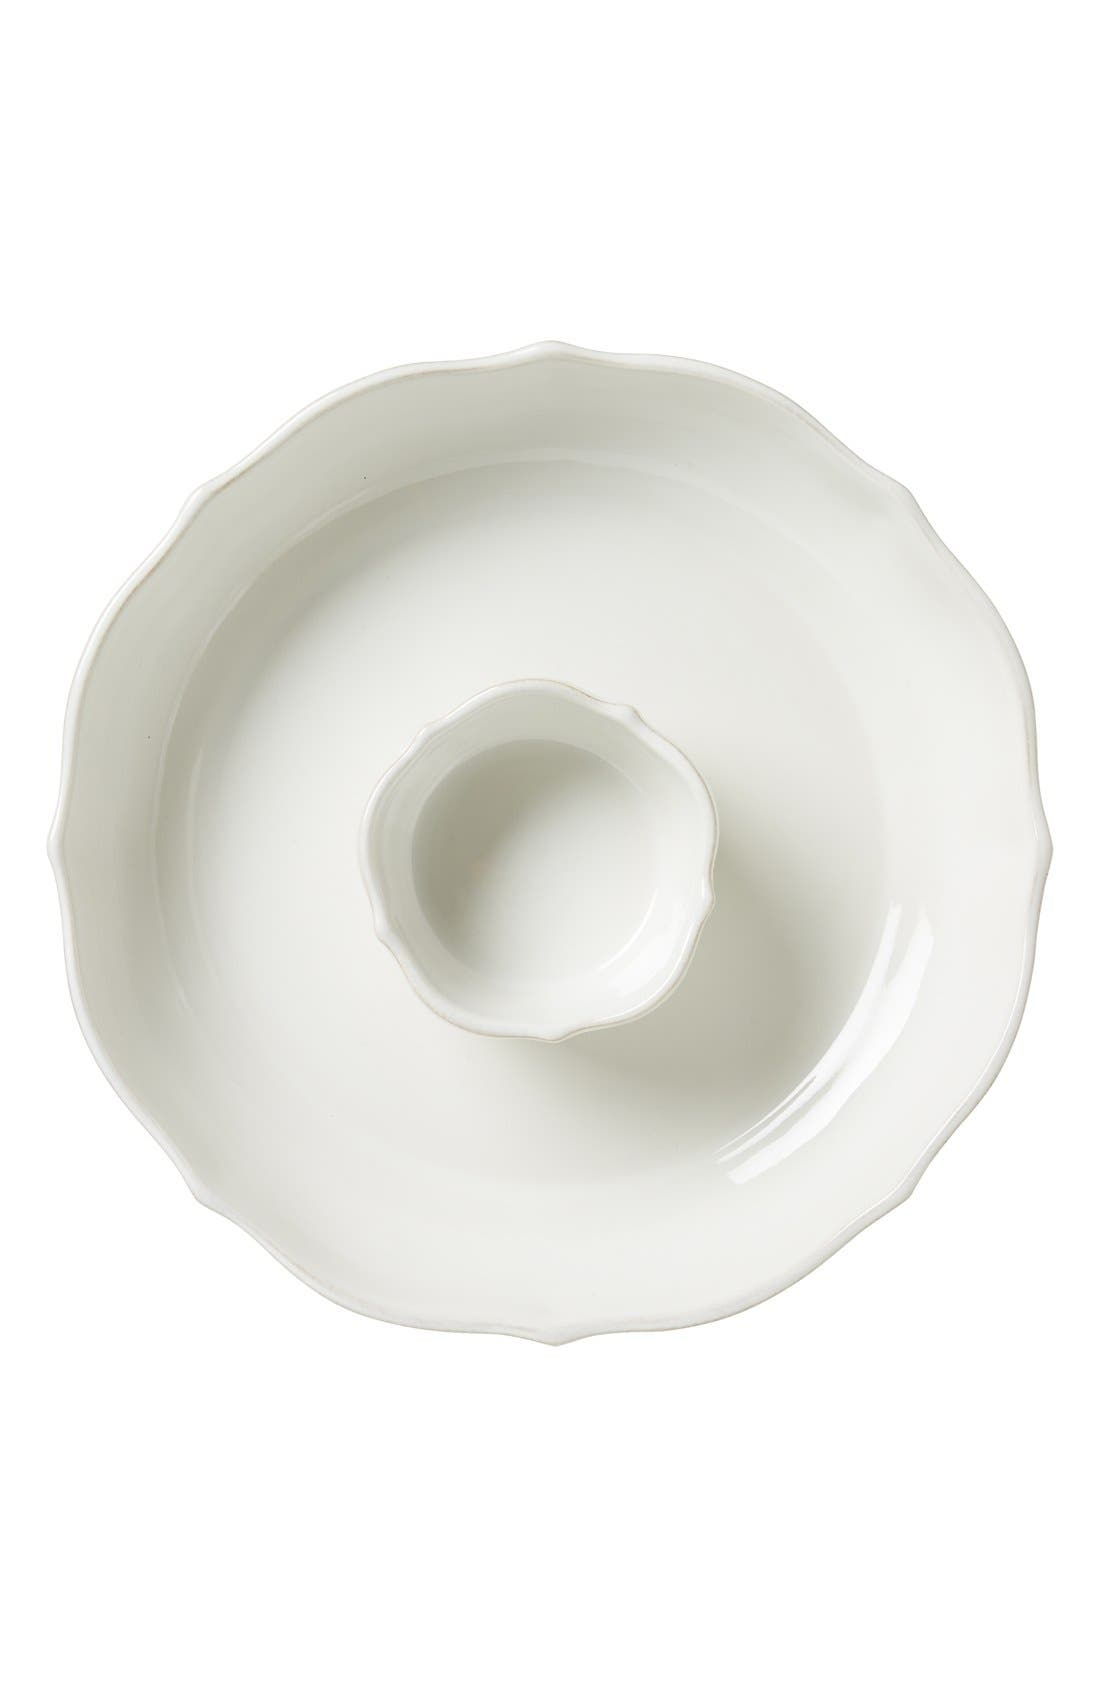 'Berry and Thread' Chips & Dip Serving Bowl,                             Main thumbnail 1, color,                             WHITEWASH